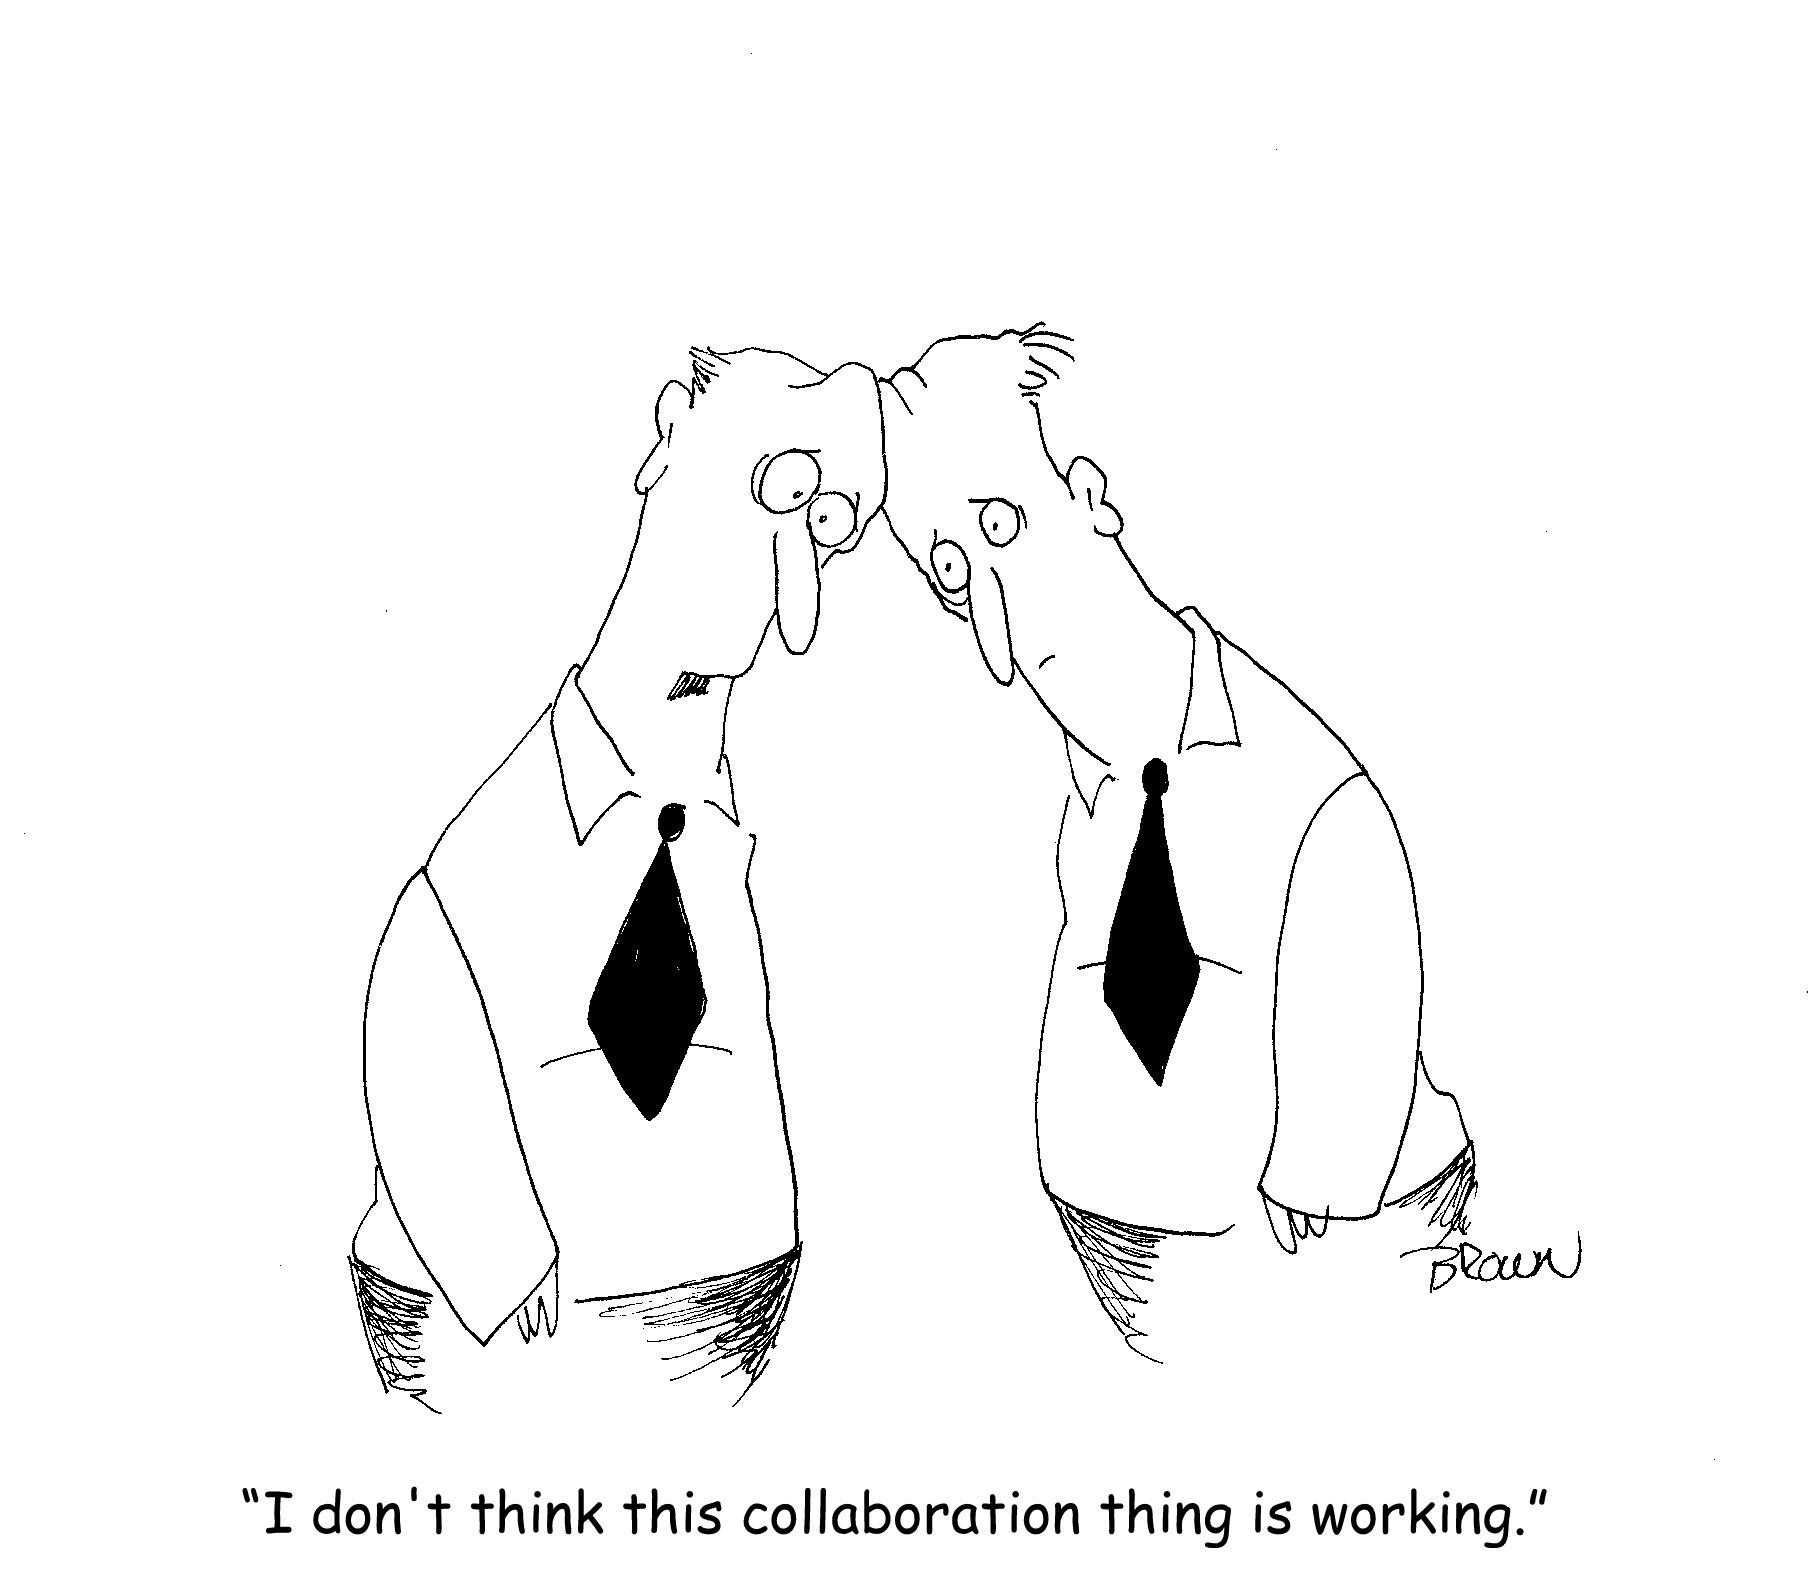 collaborate not working.bmp